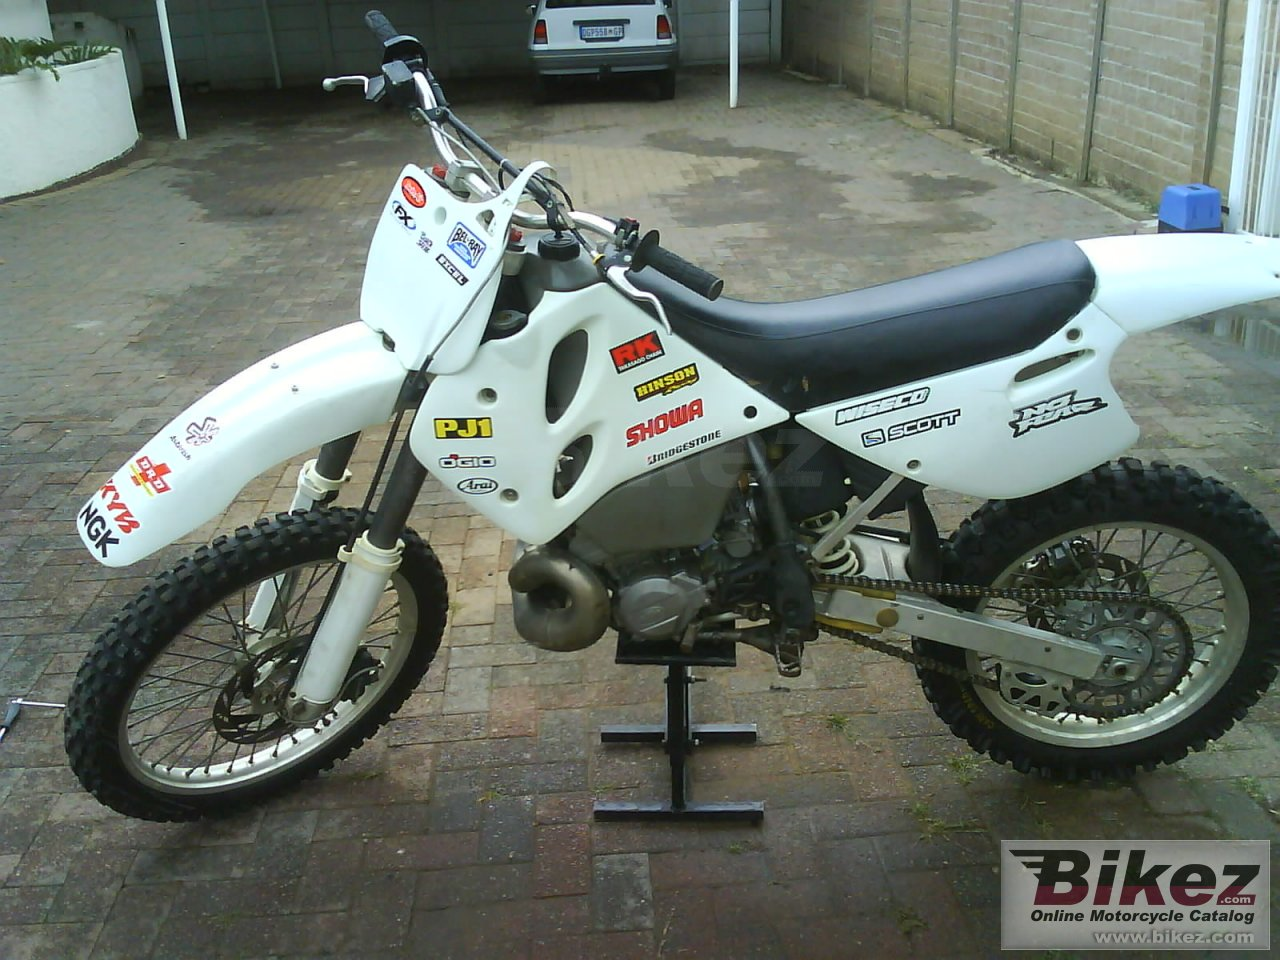 Big  enduro 300 tvc picture and wallpaper from Bikez.com